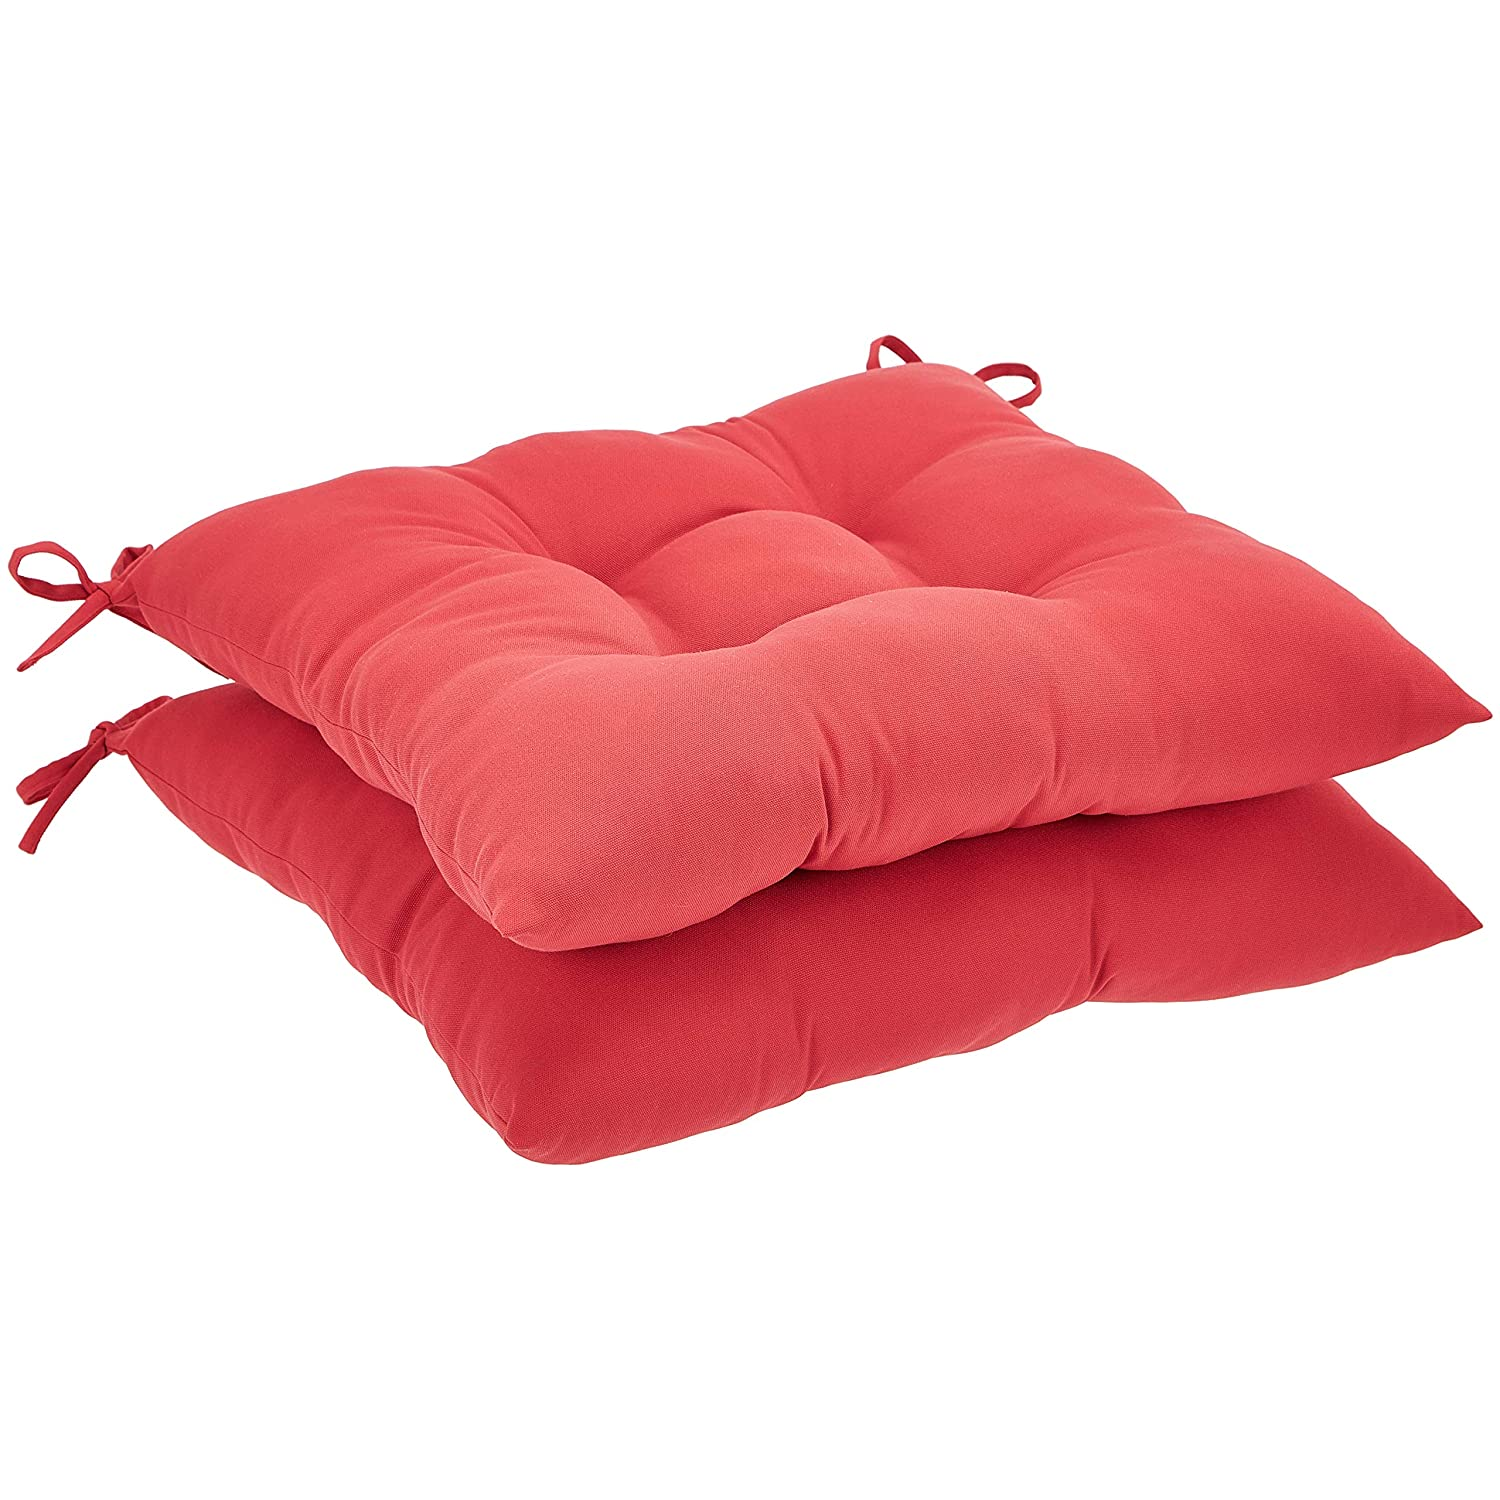 AmazonBasics Tufted Outdoor Square Seat Patio Cushion - Pack of 2, Red